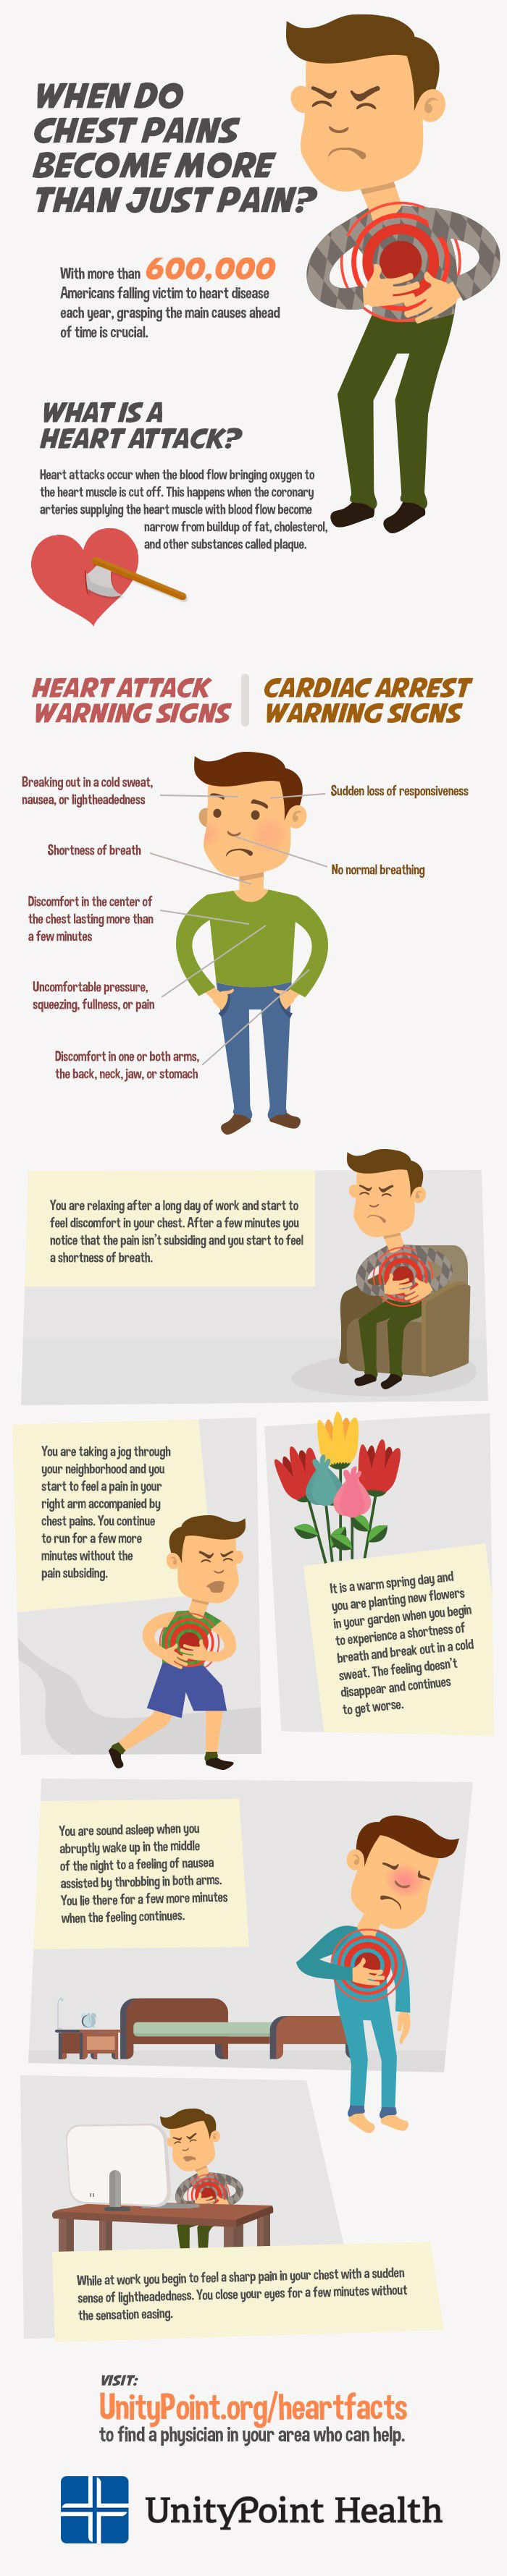 UnityPoint Clinic provides an explanation of heart attacks and cardiac arrest and when you should know that it's more than chest pains.